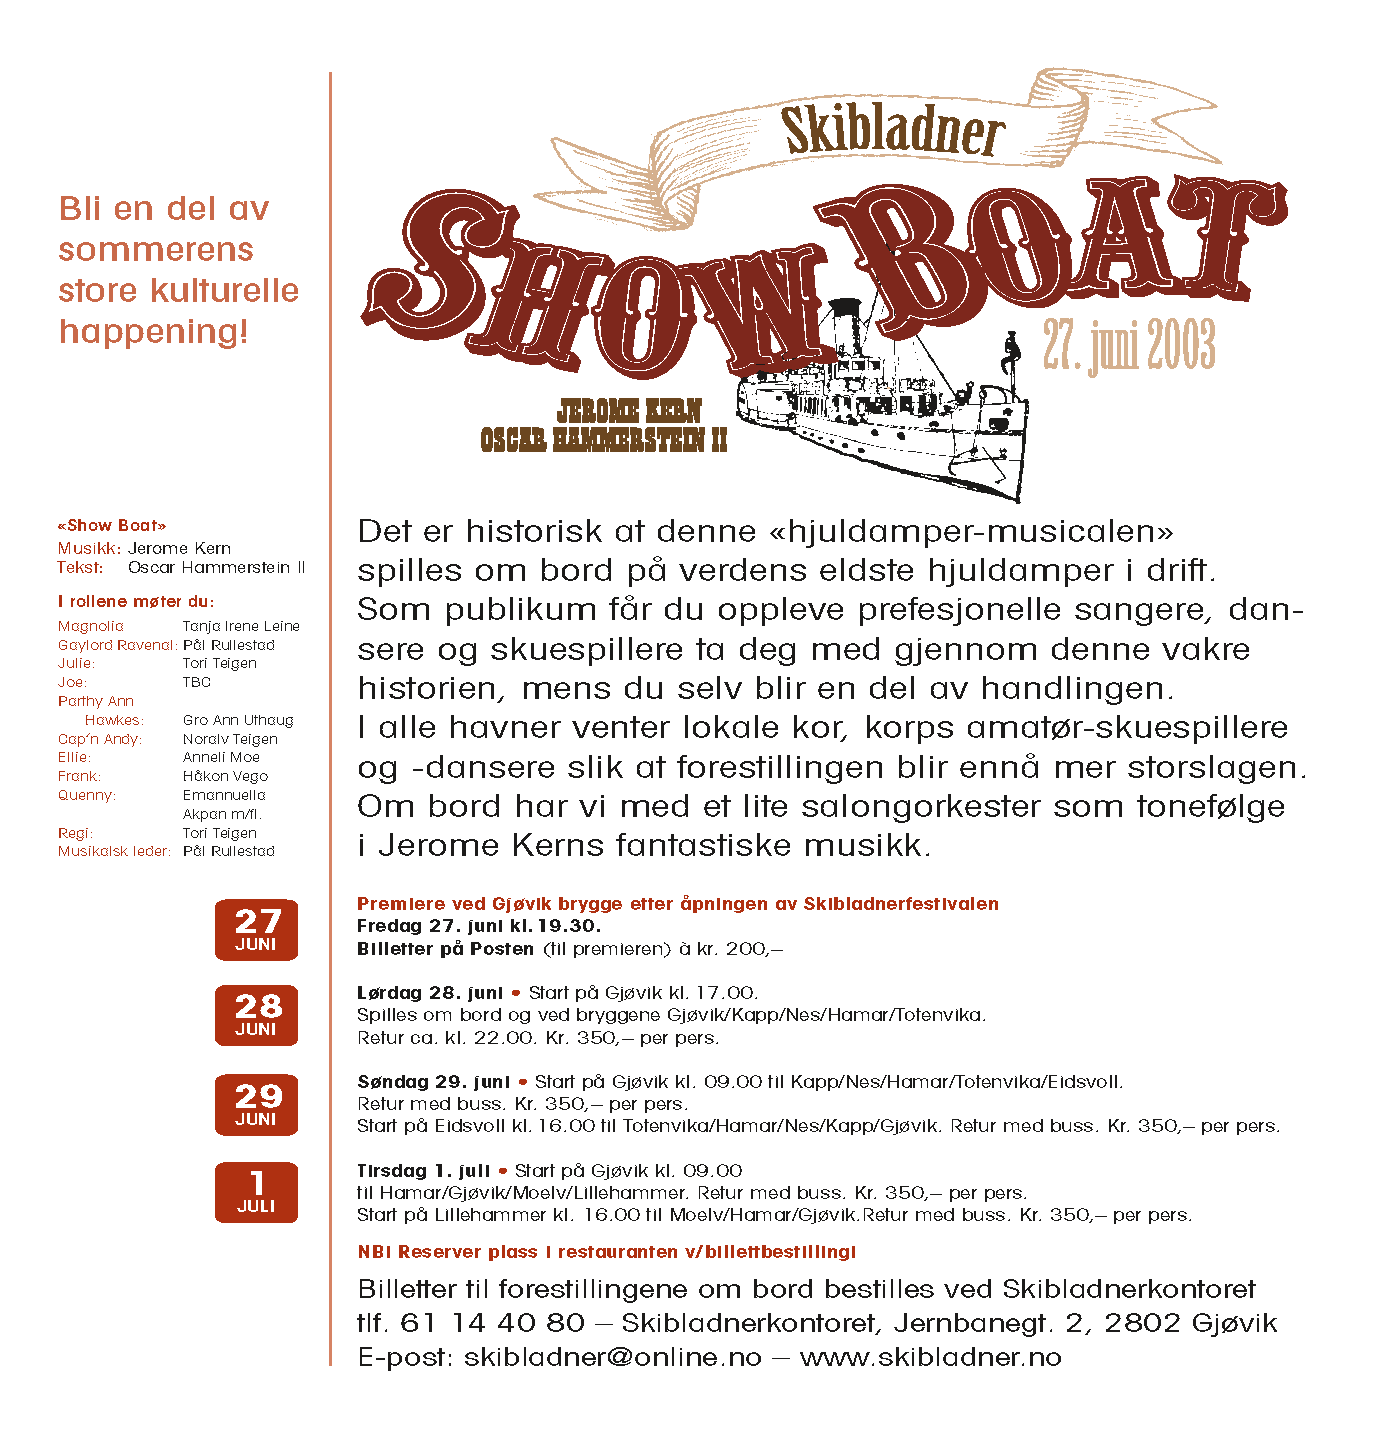 Skibladner-Showboat 2003.png